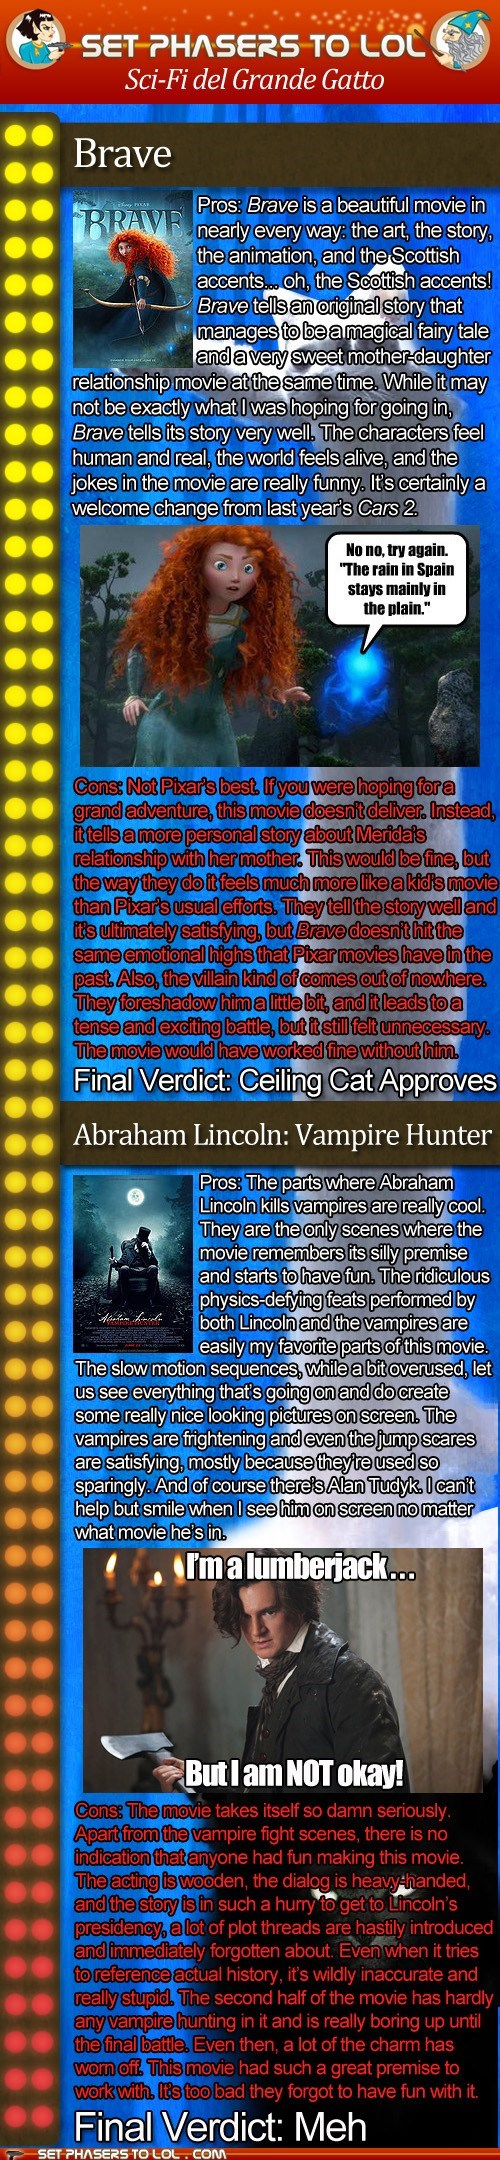 Sci-Fi del Grande Gatto: Brave and Abraham Lincoln Vampire Hunter